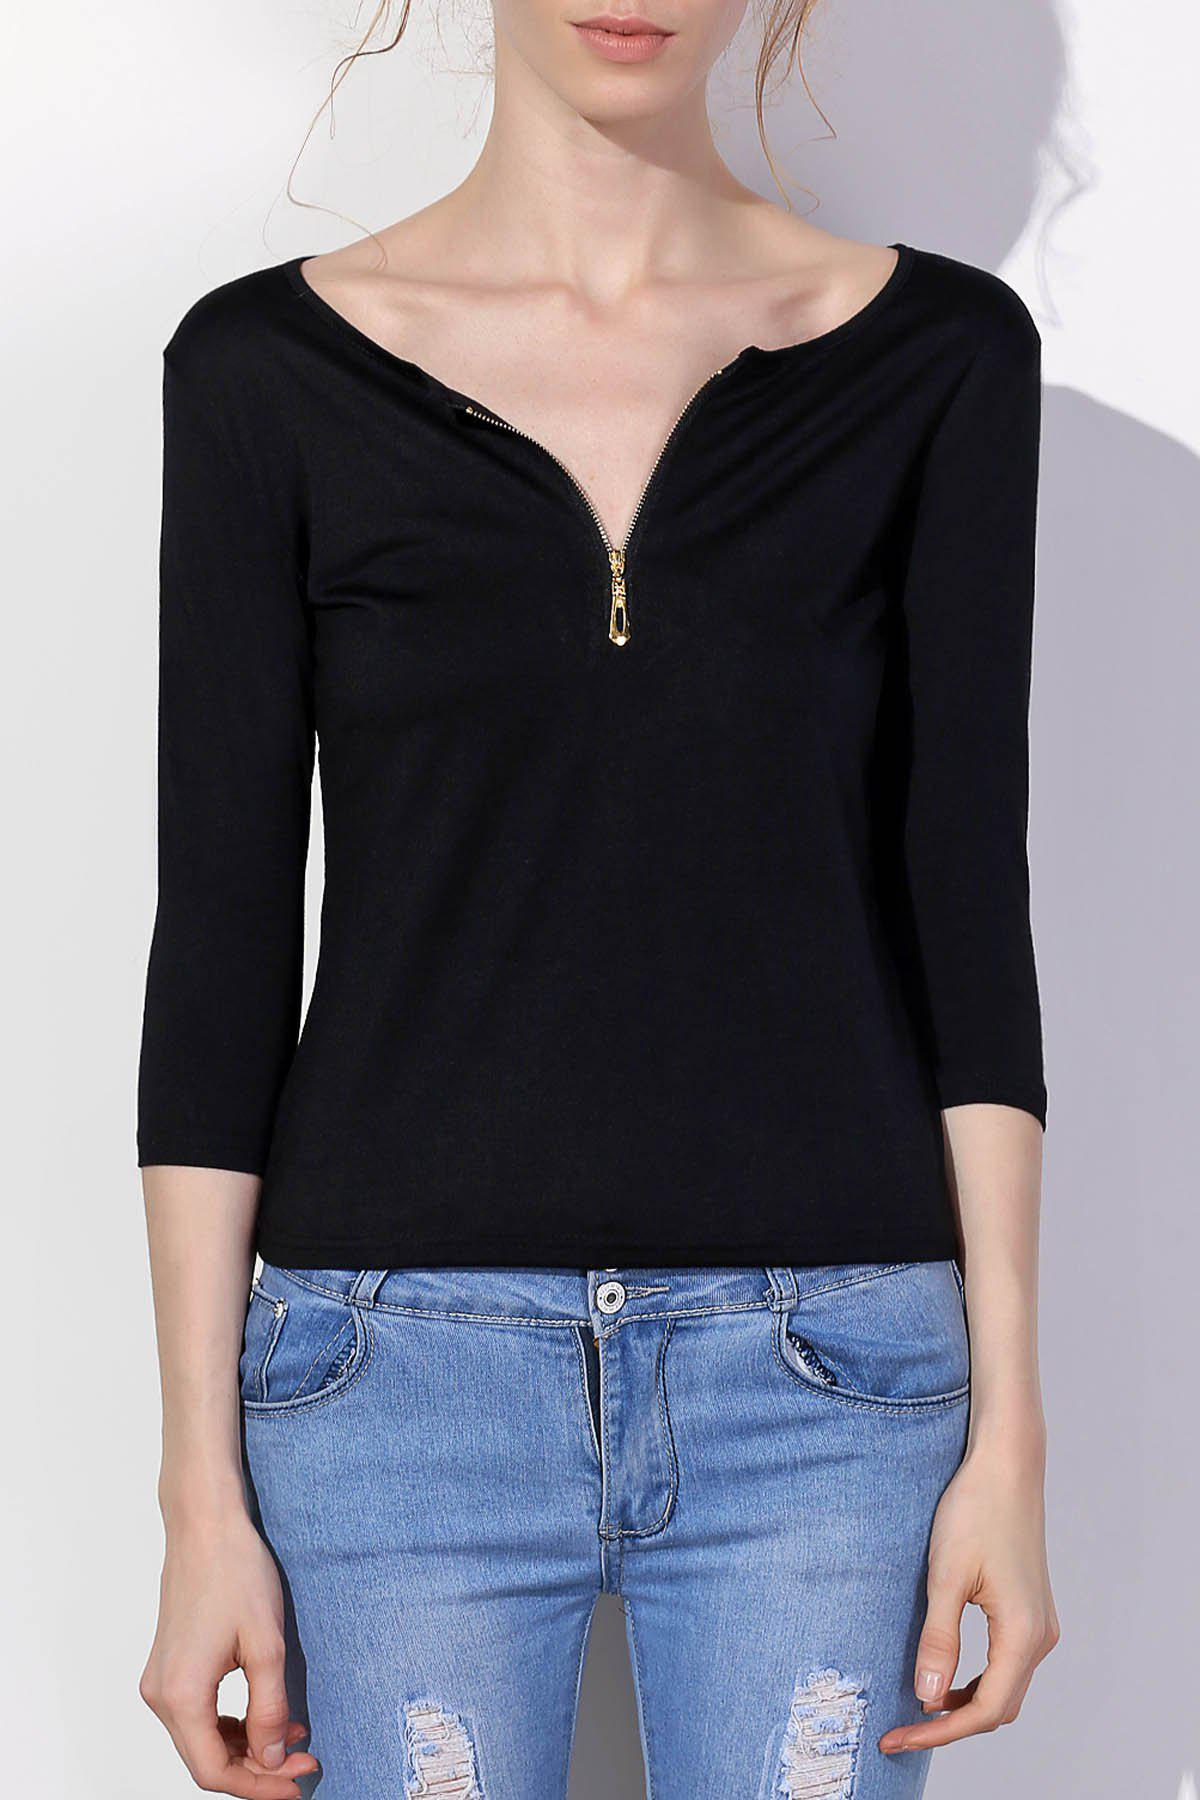 Charming Low-Cut Solid Color Zippered 3/4 Sleeve T-Shirt For Women - BLACK L